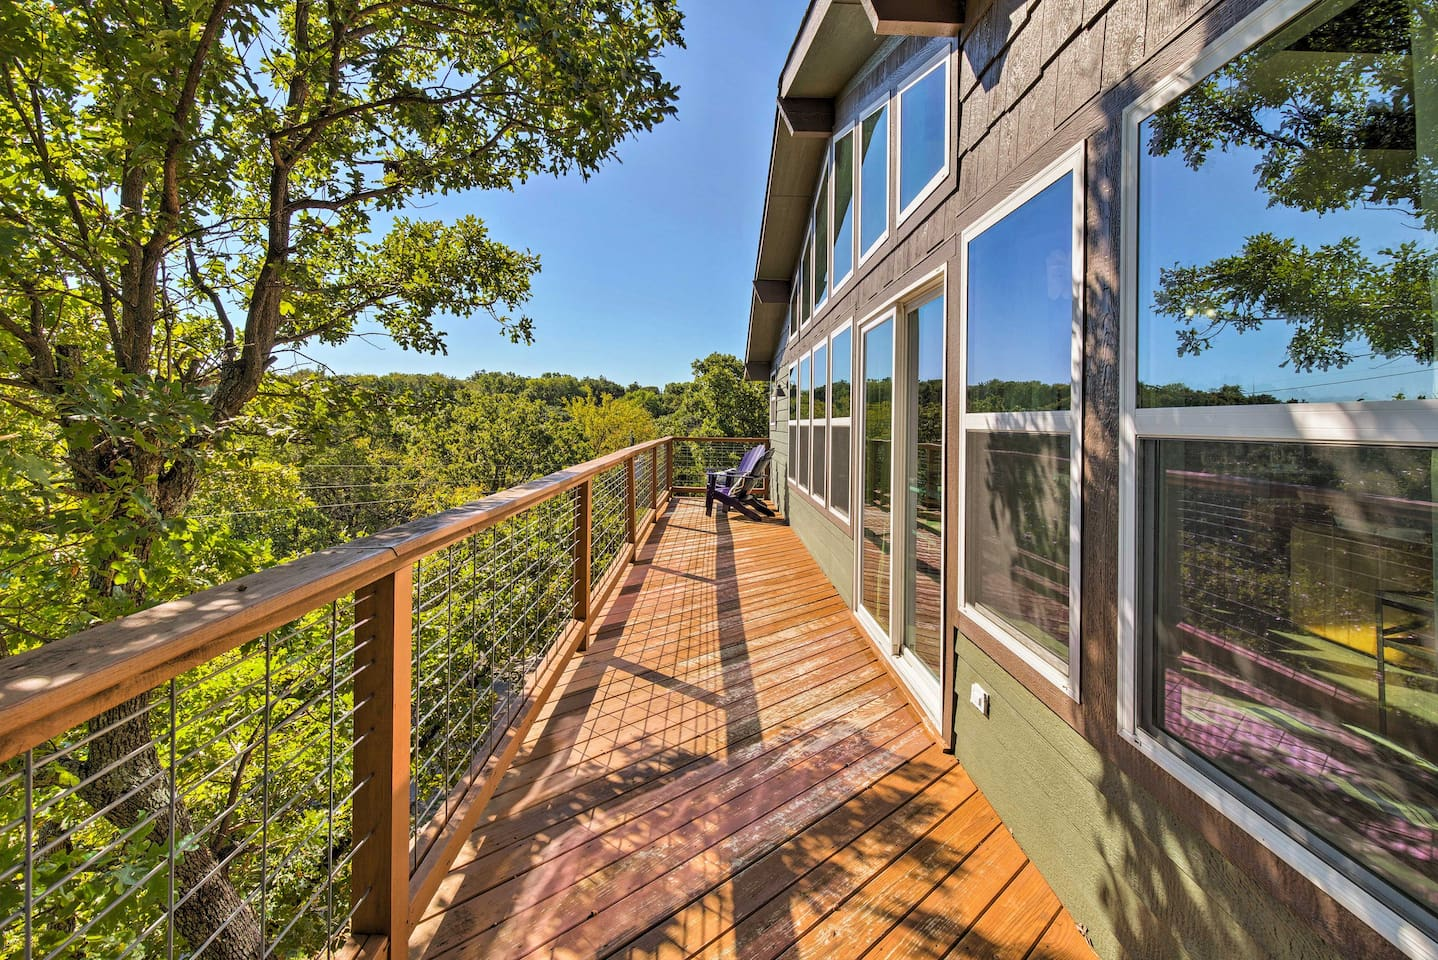 This 3-bedroom, 2.5-bath vacation rental home is the perfect Texahoma retreat!